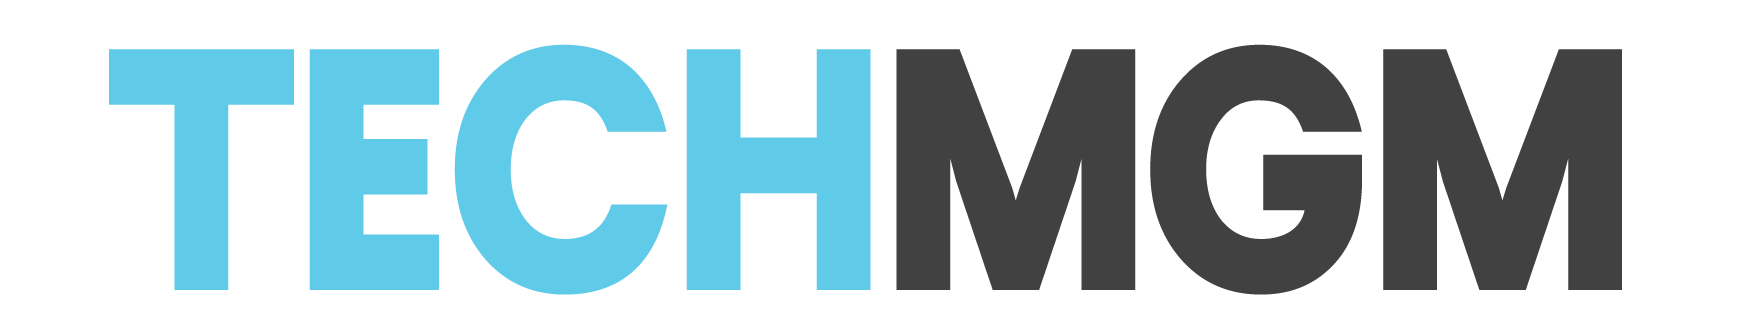 TechMGM-logo---teal-and-grey.png